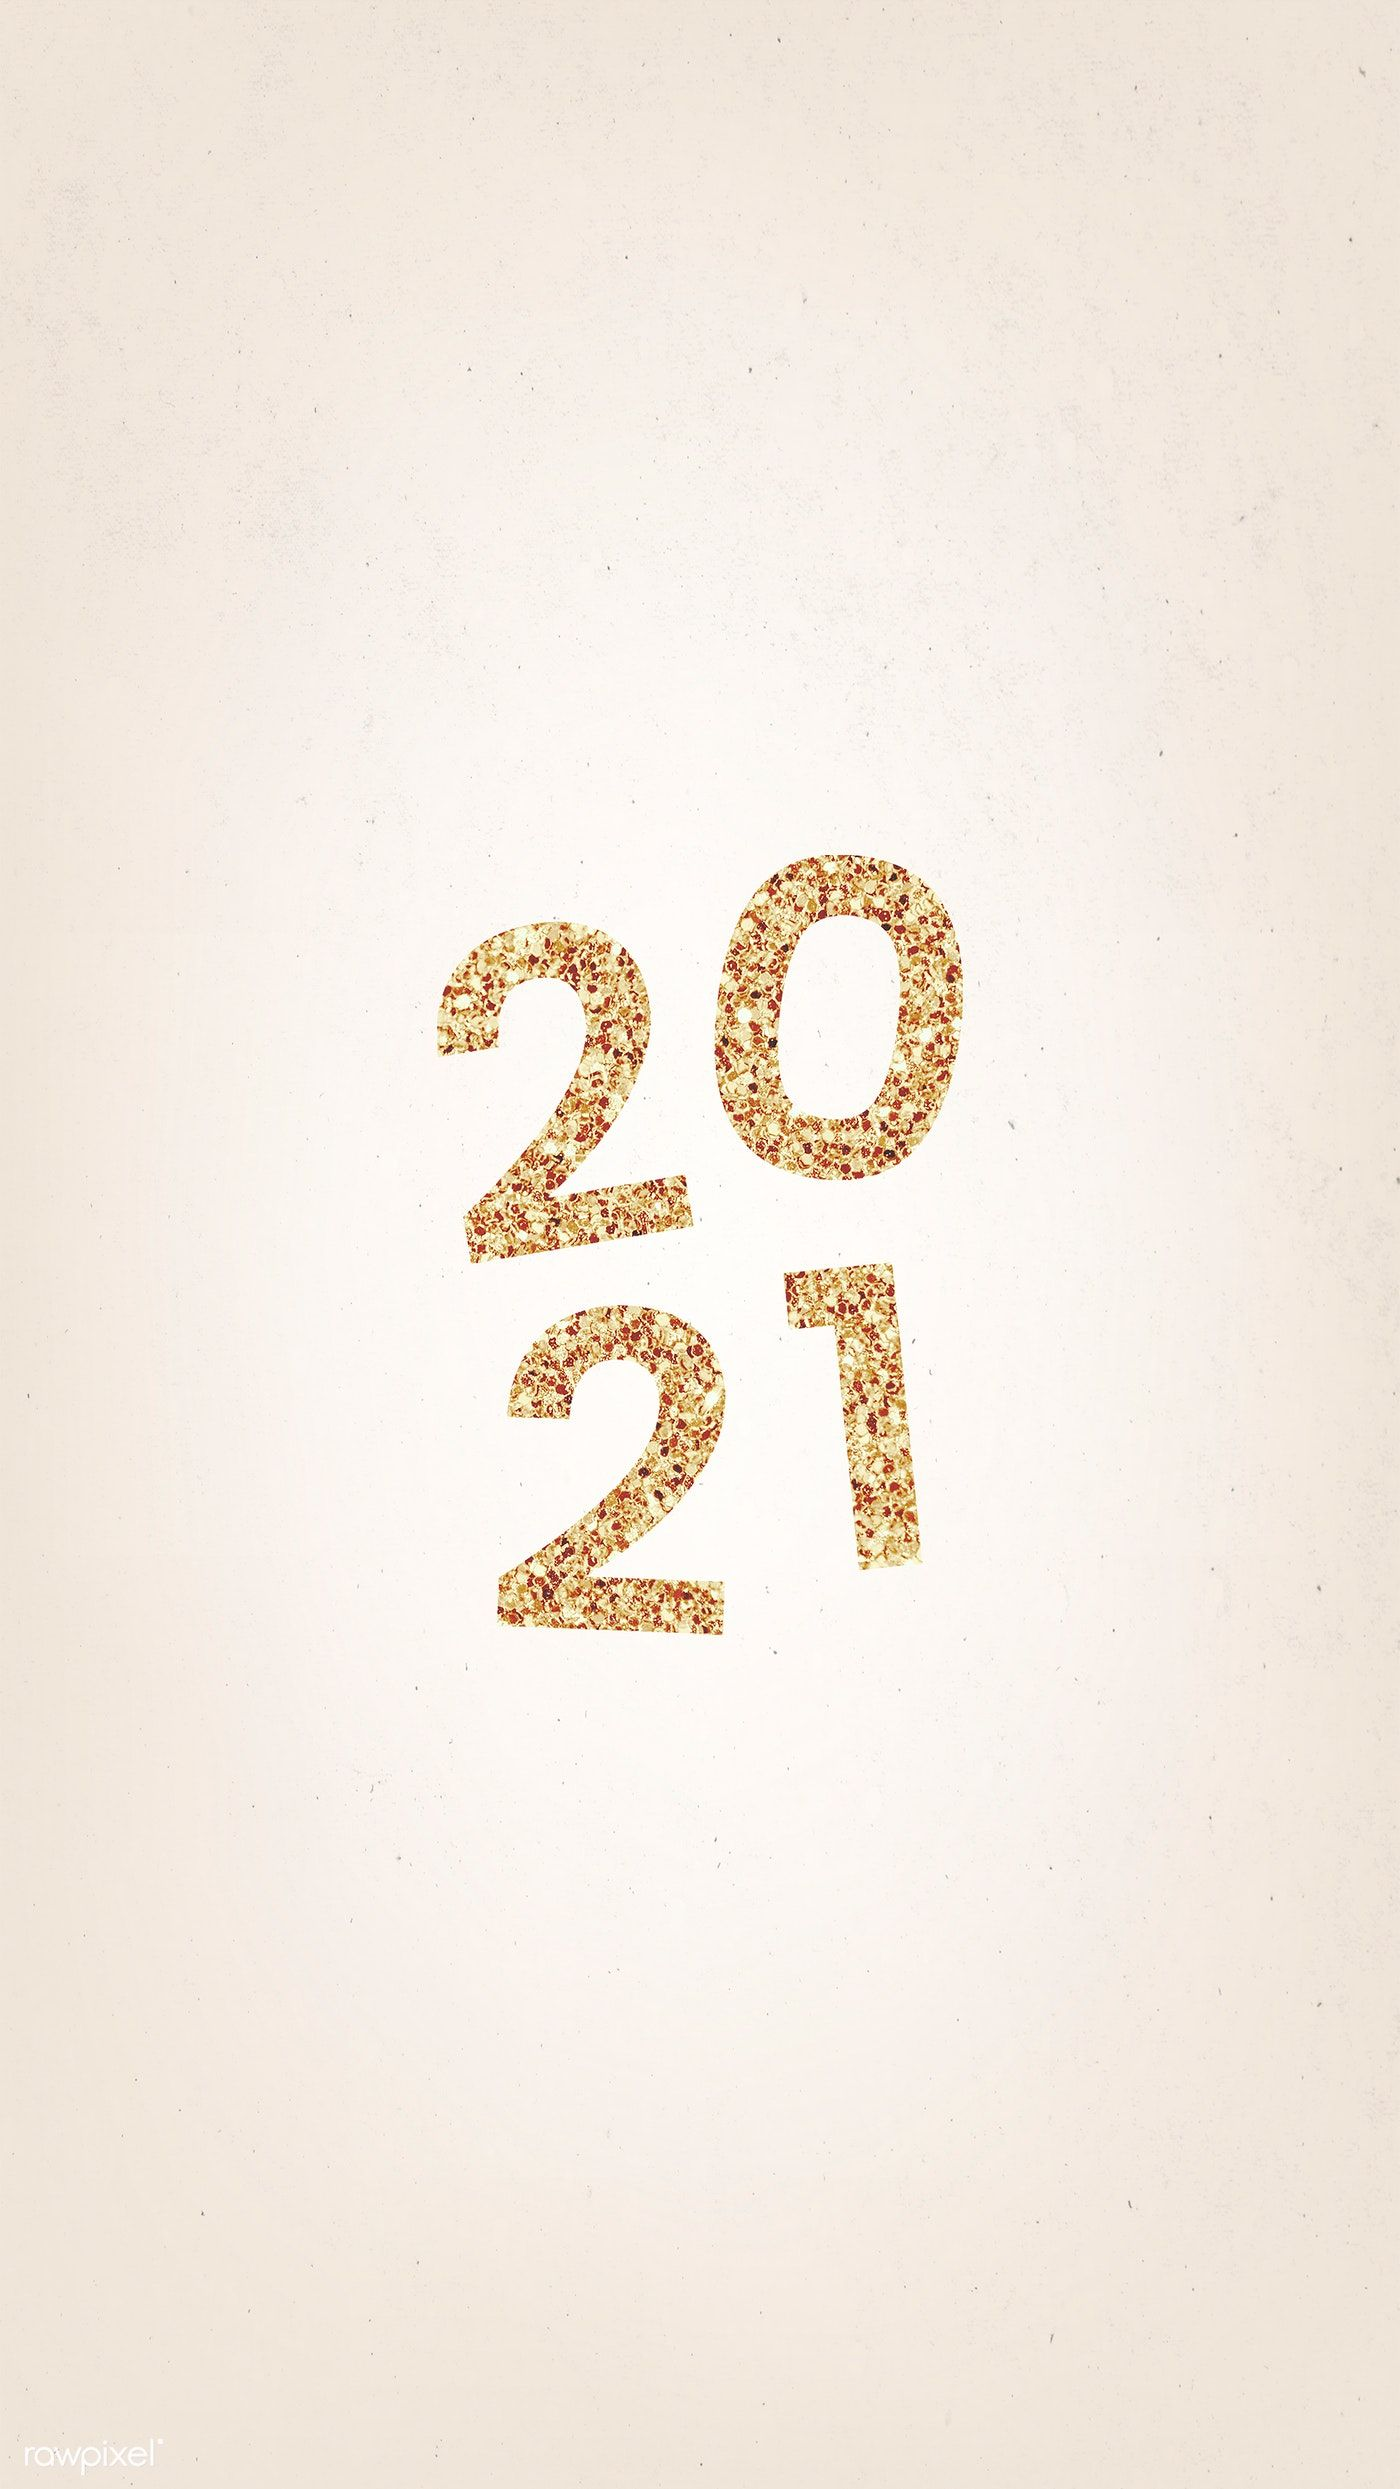 Festive shimmering golden 2021 illustration free image